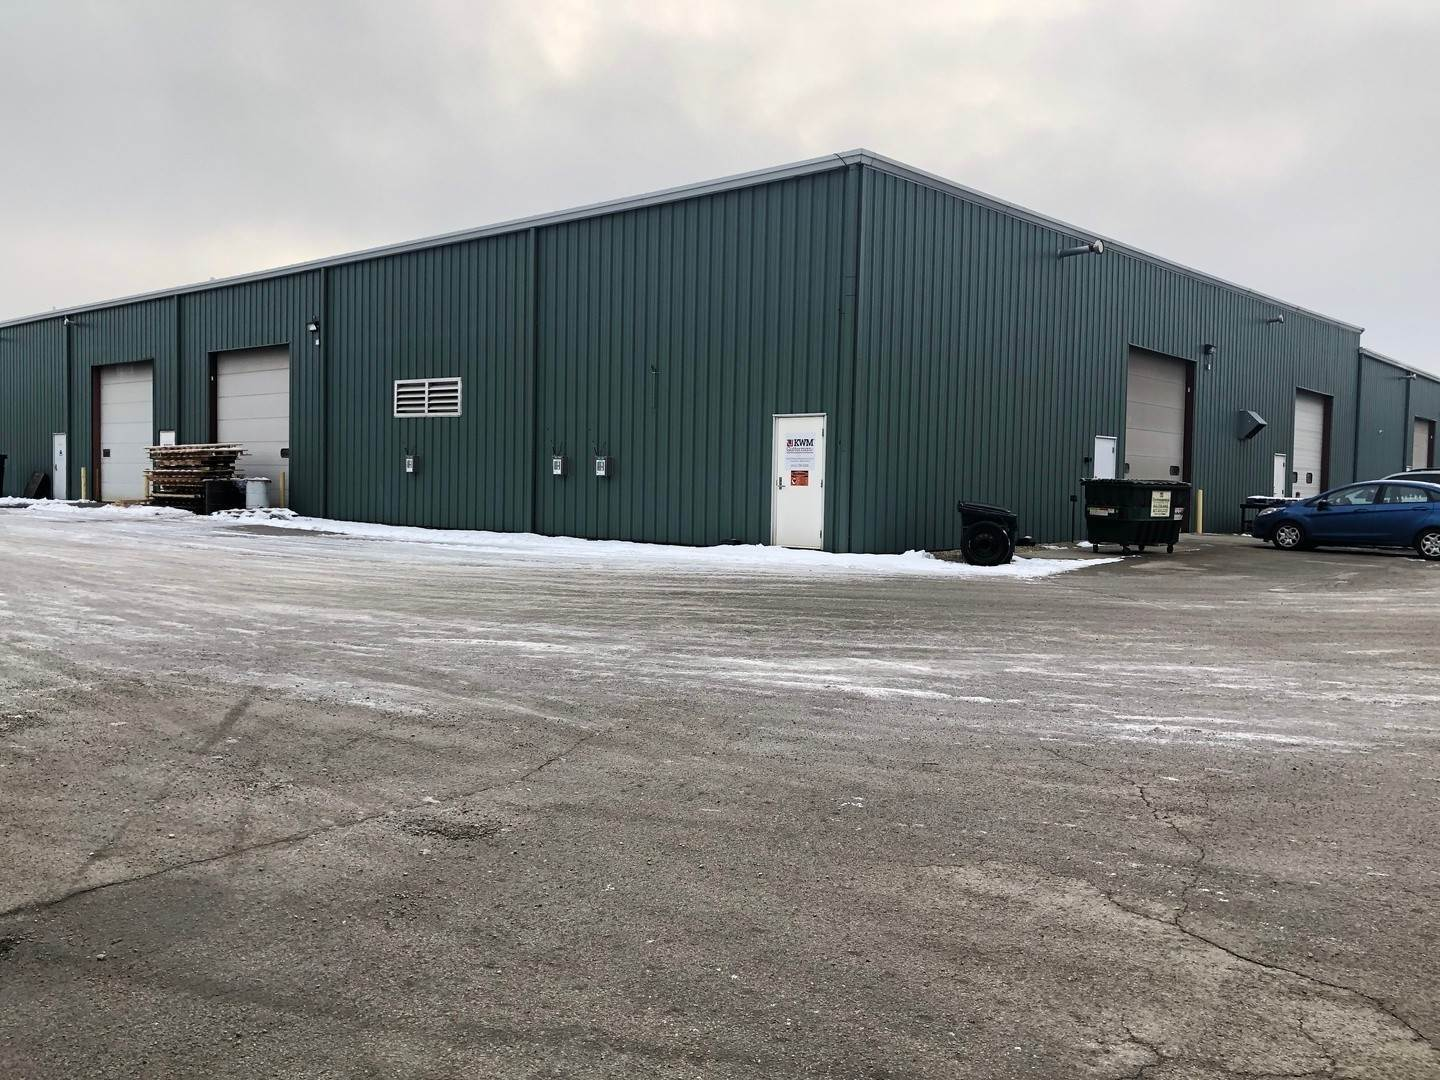 Commercial for Sale at 24236 Northern Illinois Drive Channahon, Illinois 60410 United States